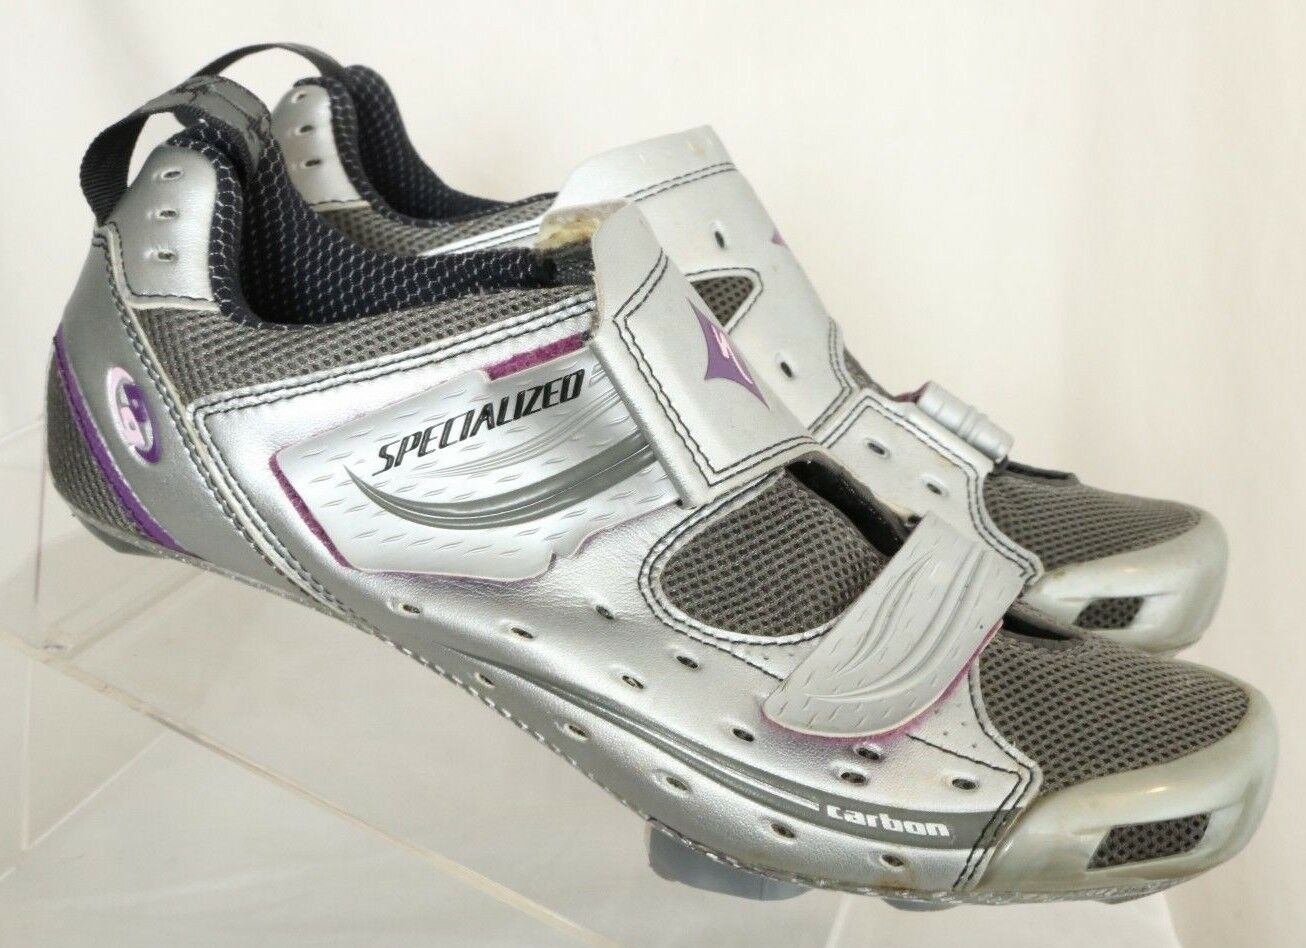 Specialized 6107-3142 Trivent Triathlon  170 Cycling Sneakers Women's US 10.5